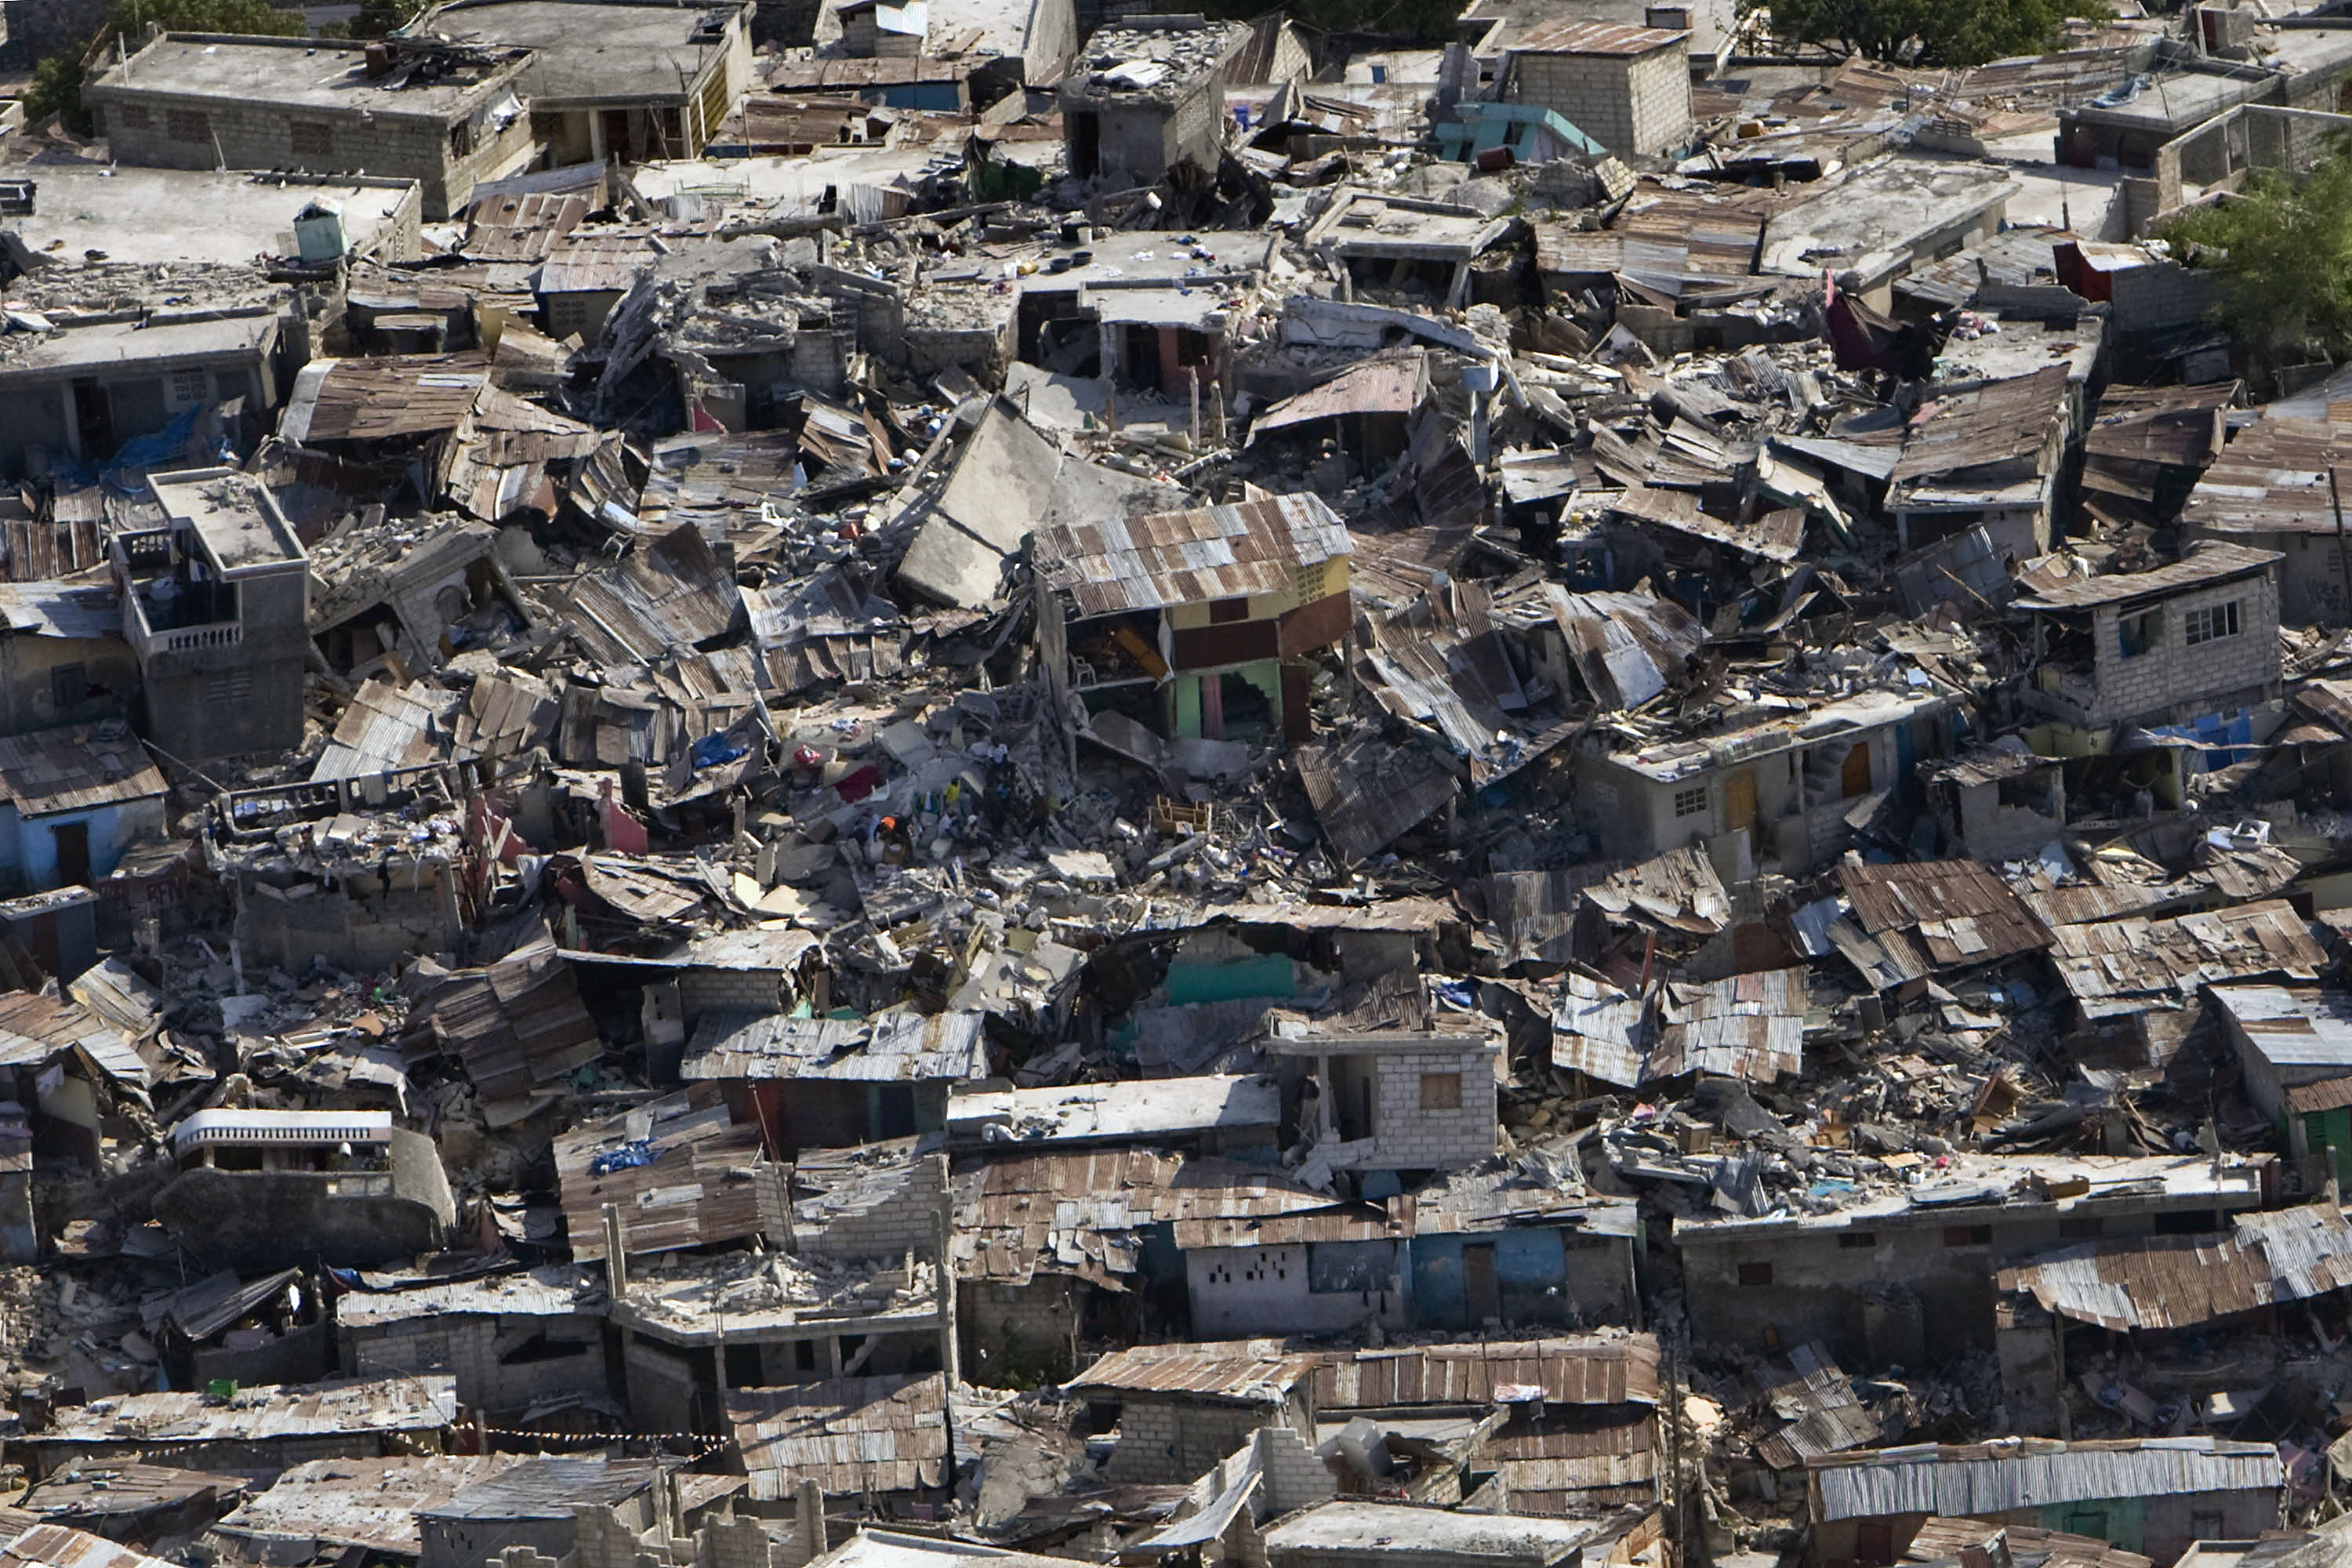 File:Haiti earthquake damage.jpg - Wikimedia Commons